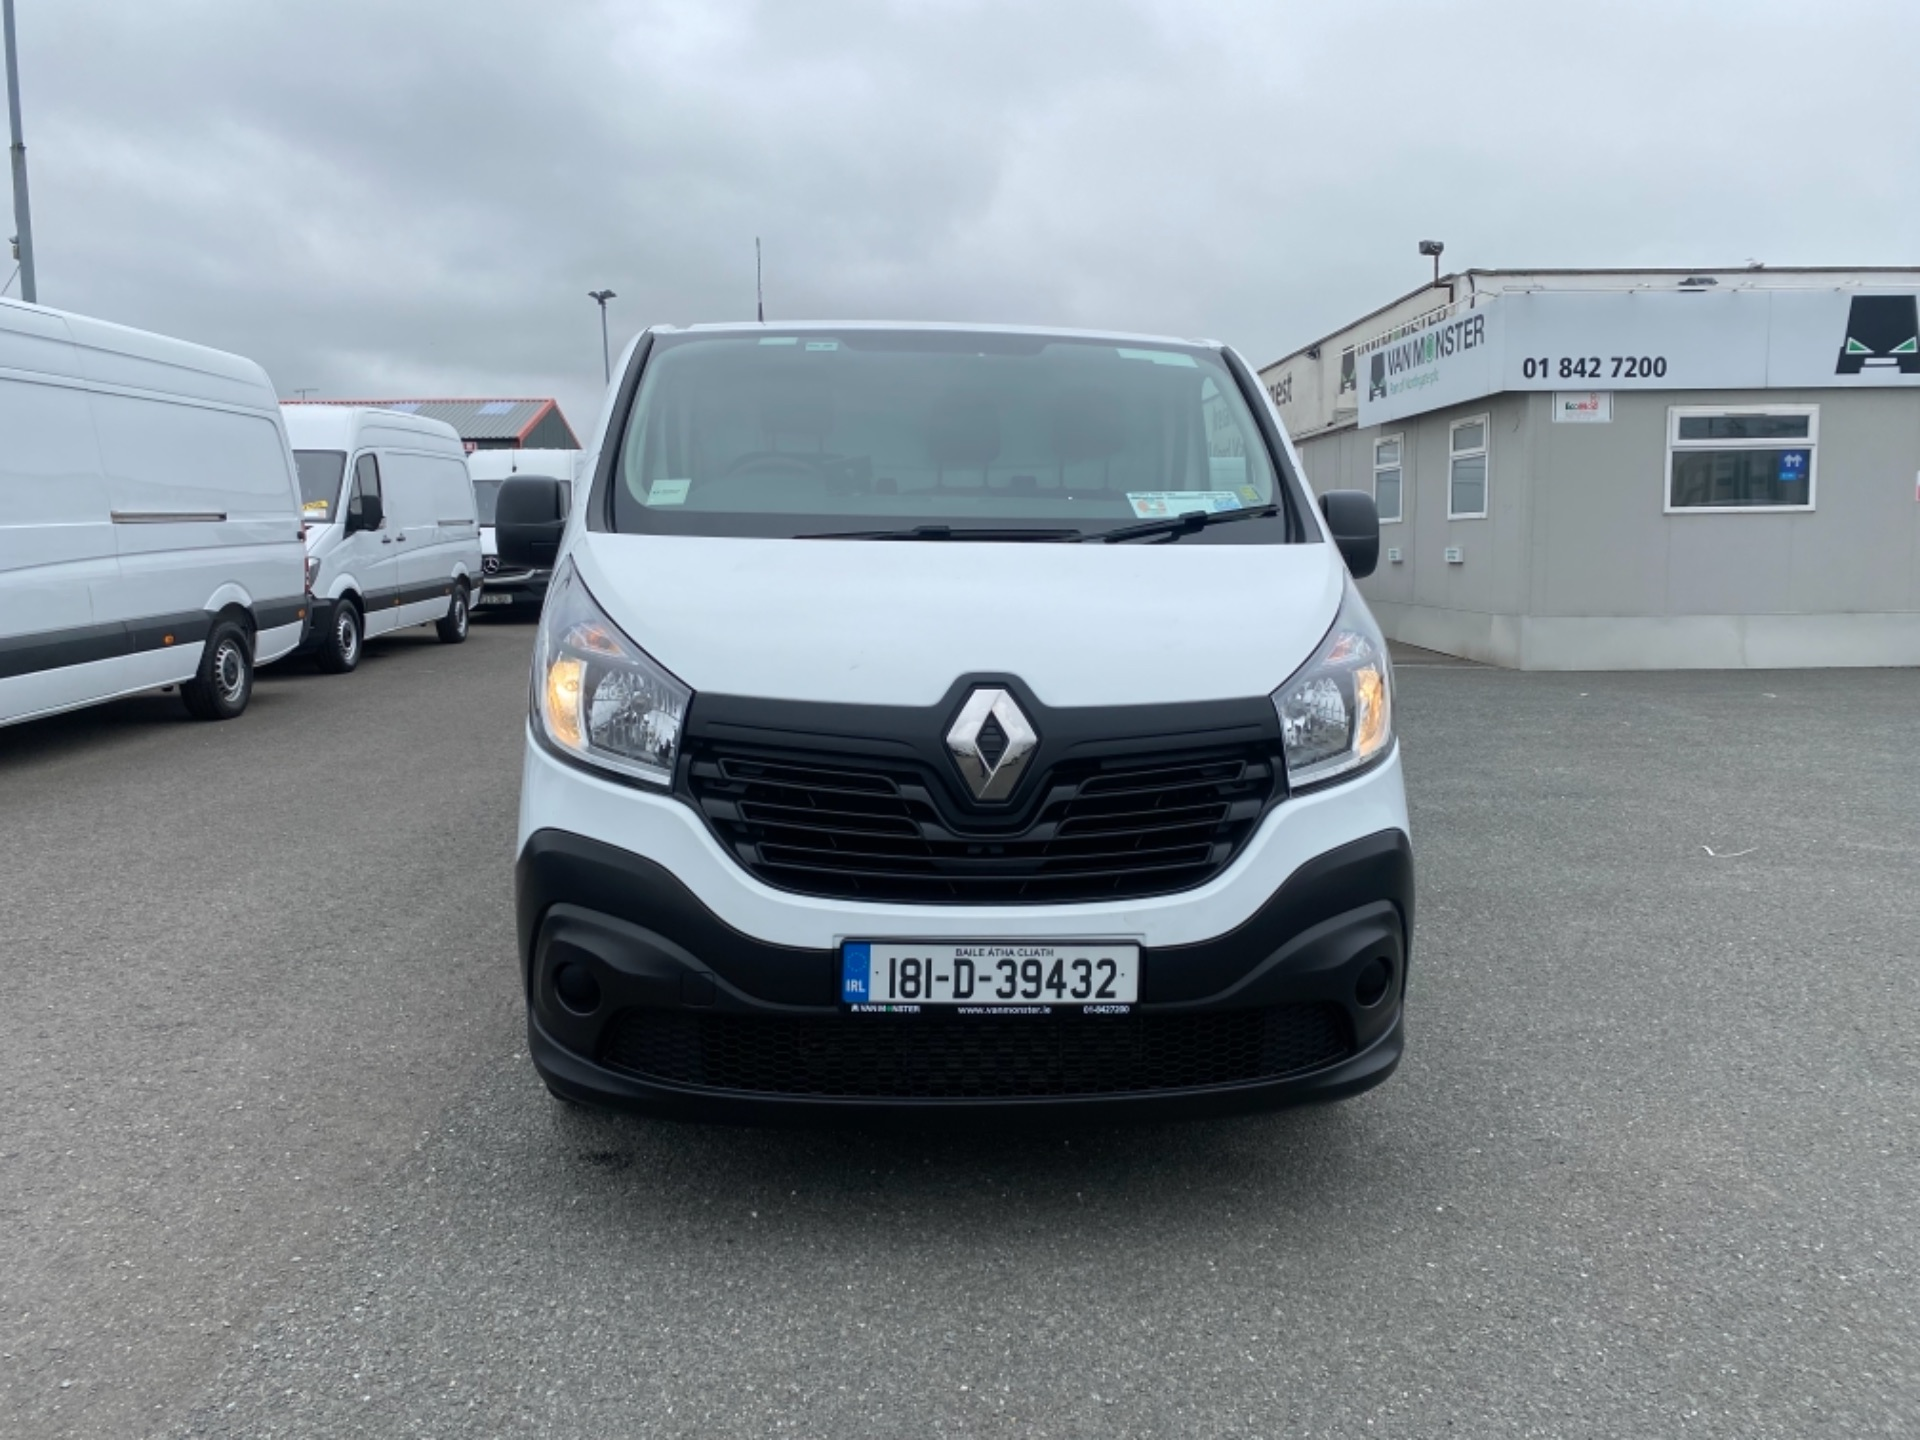 2018 Renault Trafic LL29 DCI 120 Business 3DR (181D39432) Image 3